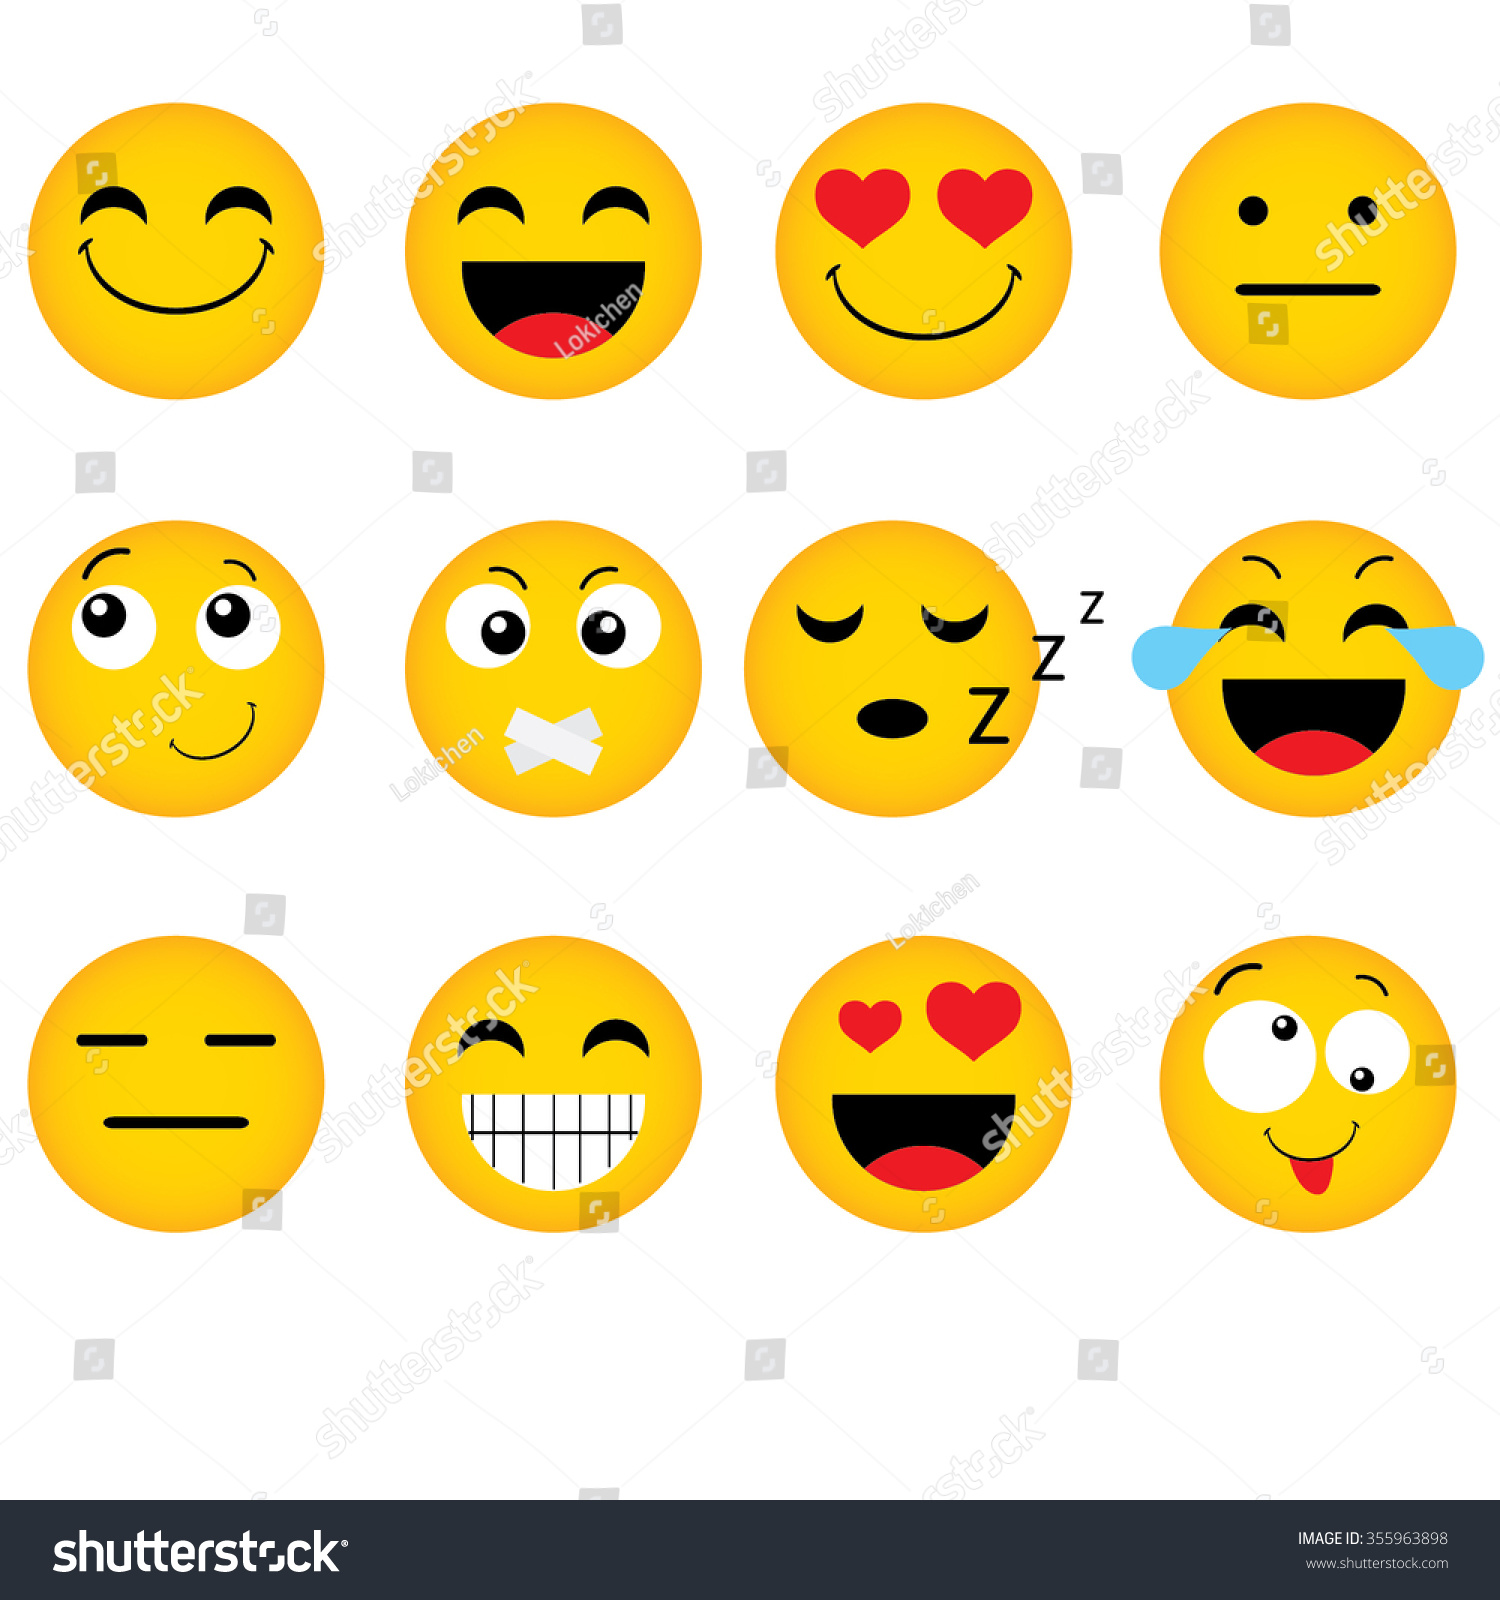 Lotus Notes Emoticons Emoticon Vector Style Smile Face Icons Stock Vector 355963898